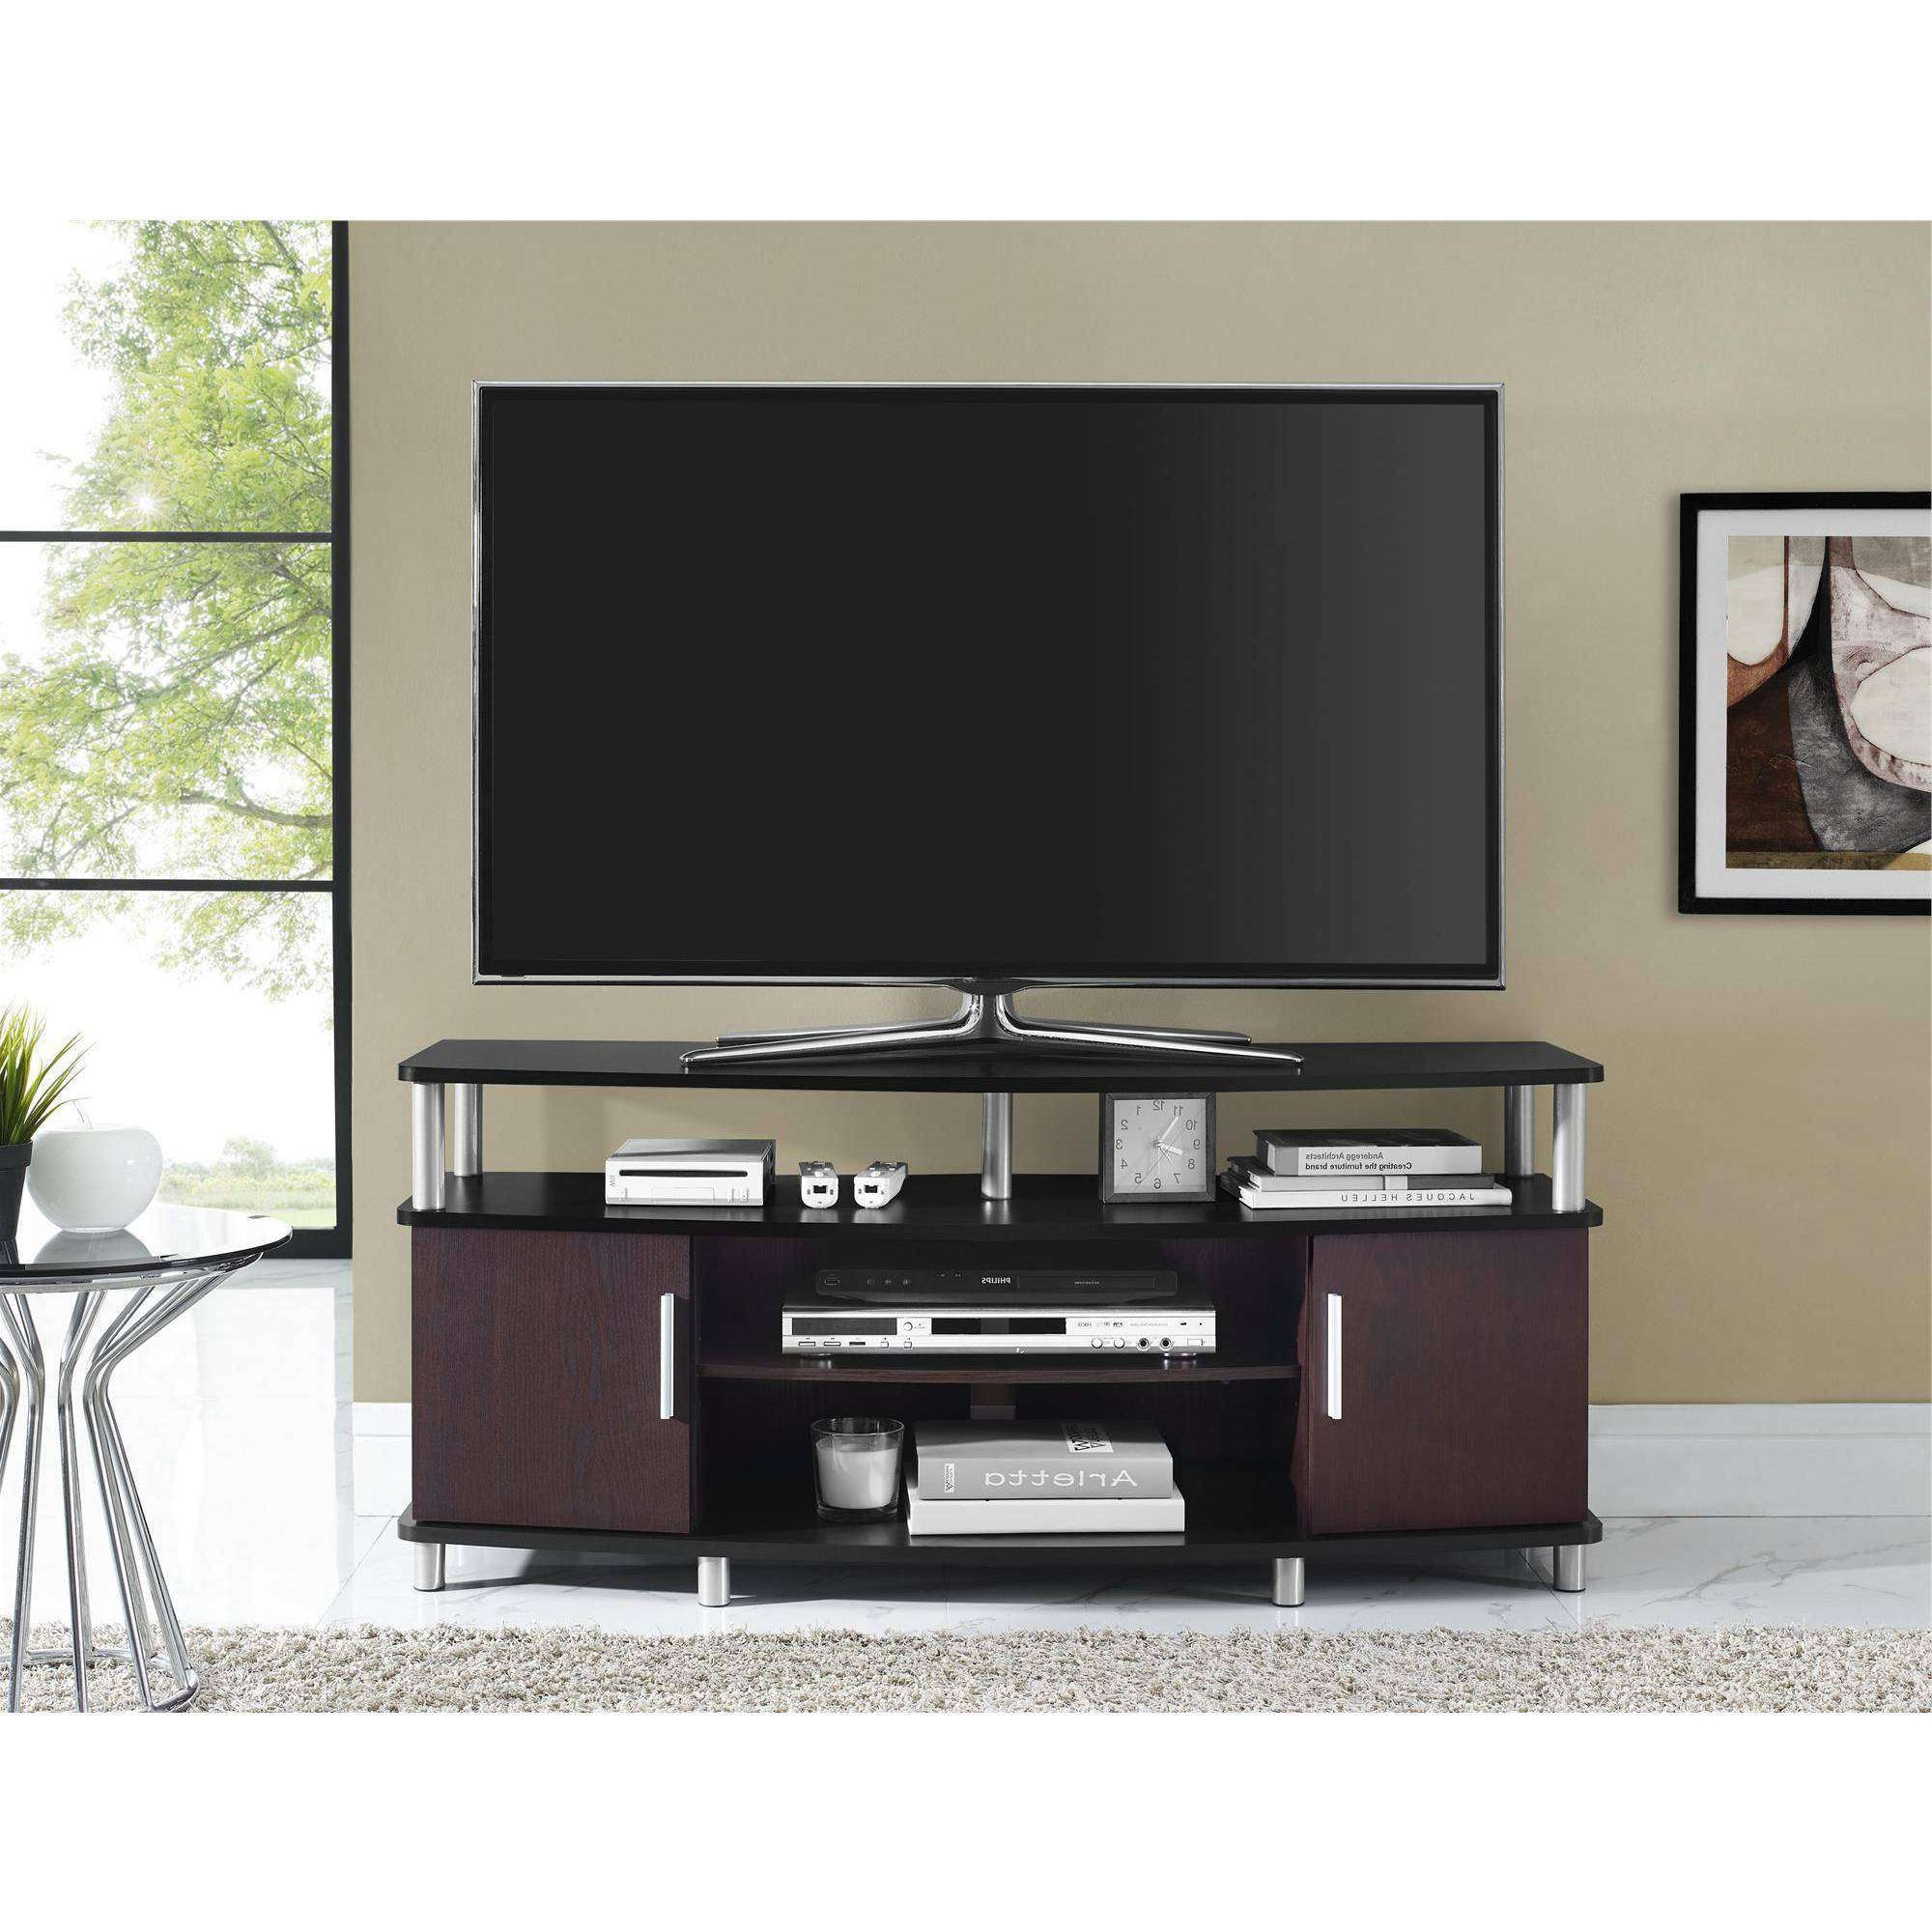 Why The Color Of Your Tv Stand 50 Inches Is Very Important With Regard To Wooden Tv Stands For 50 Inch Tv (View 8 of 15)